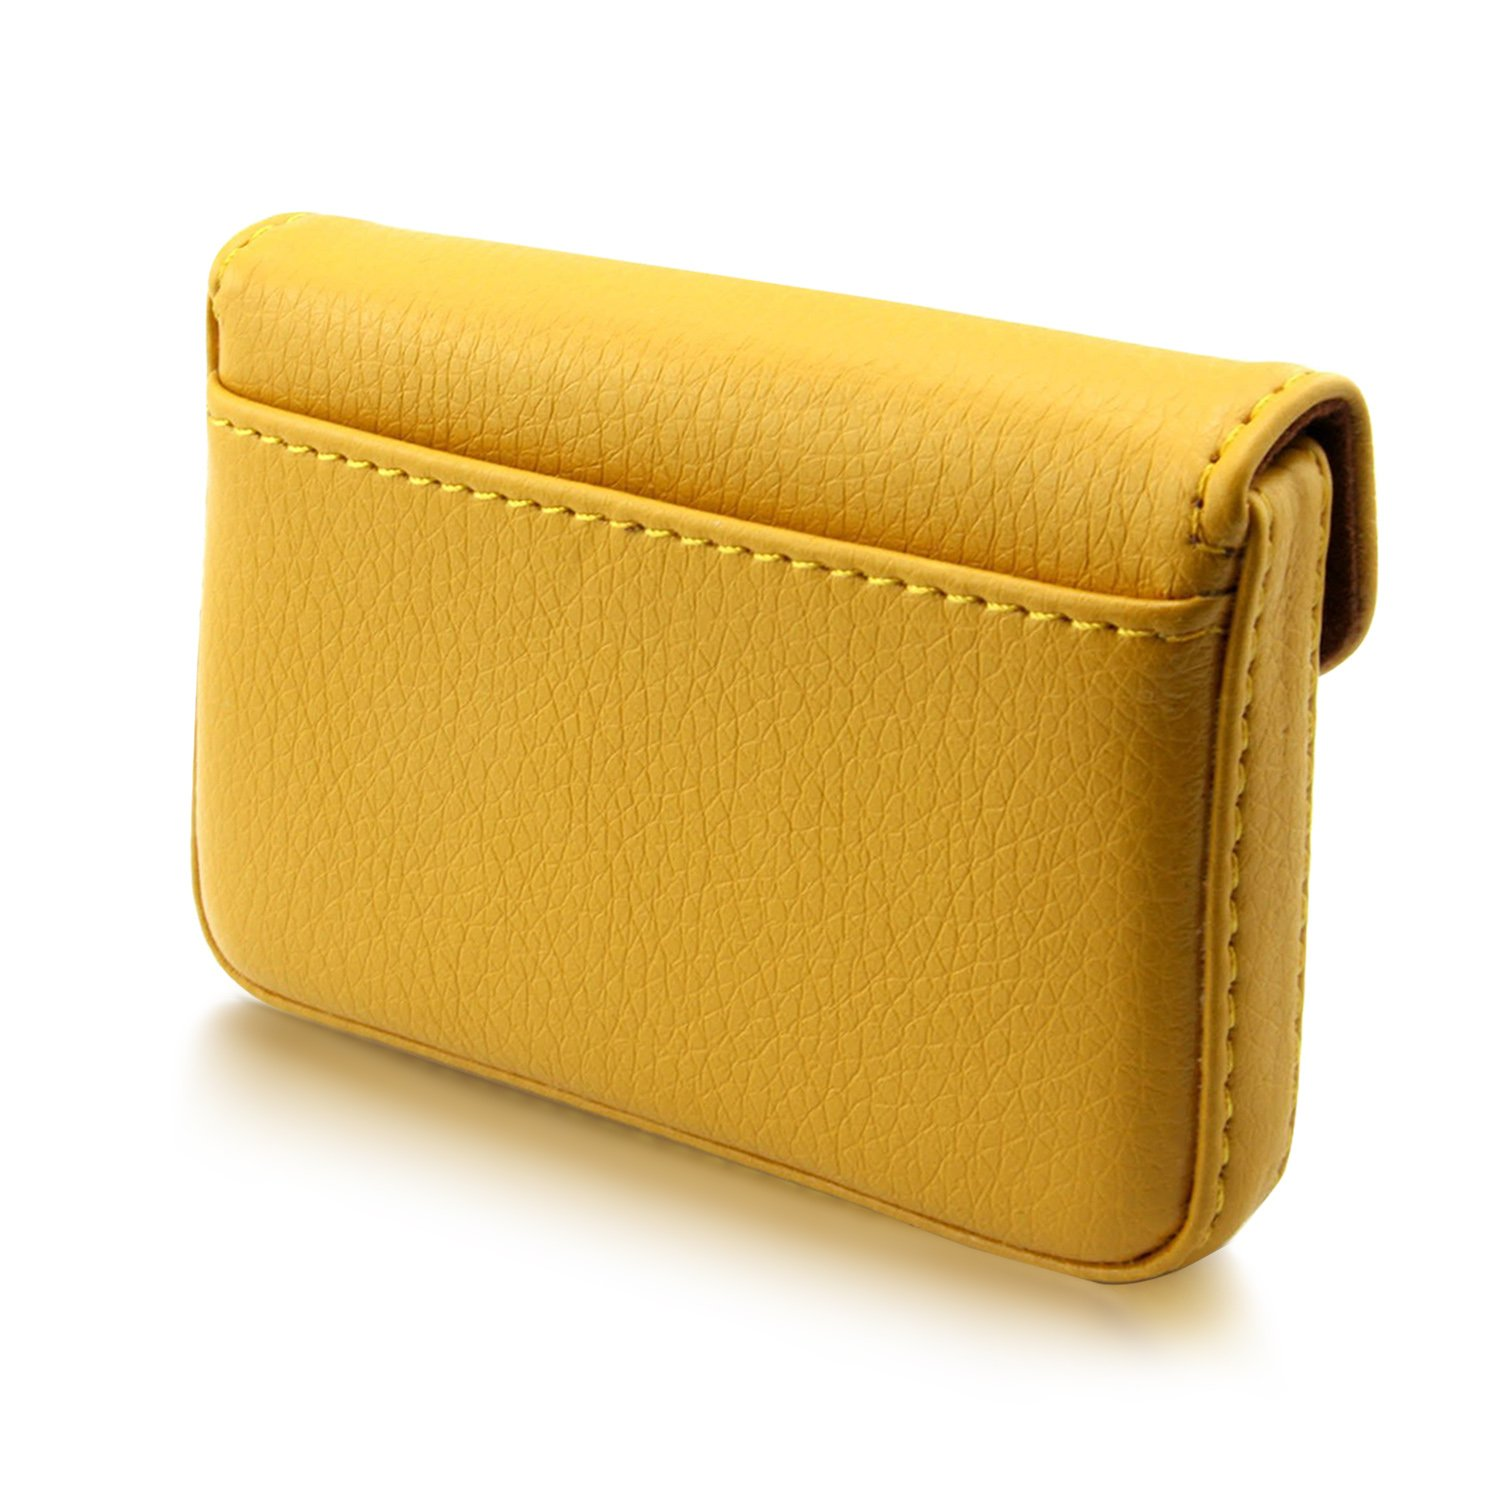 MaxGear PU Leather Business Card Holder Wallet Professional Business ...